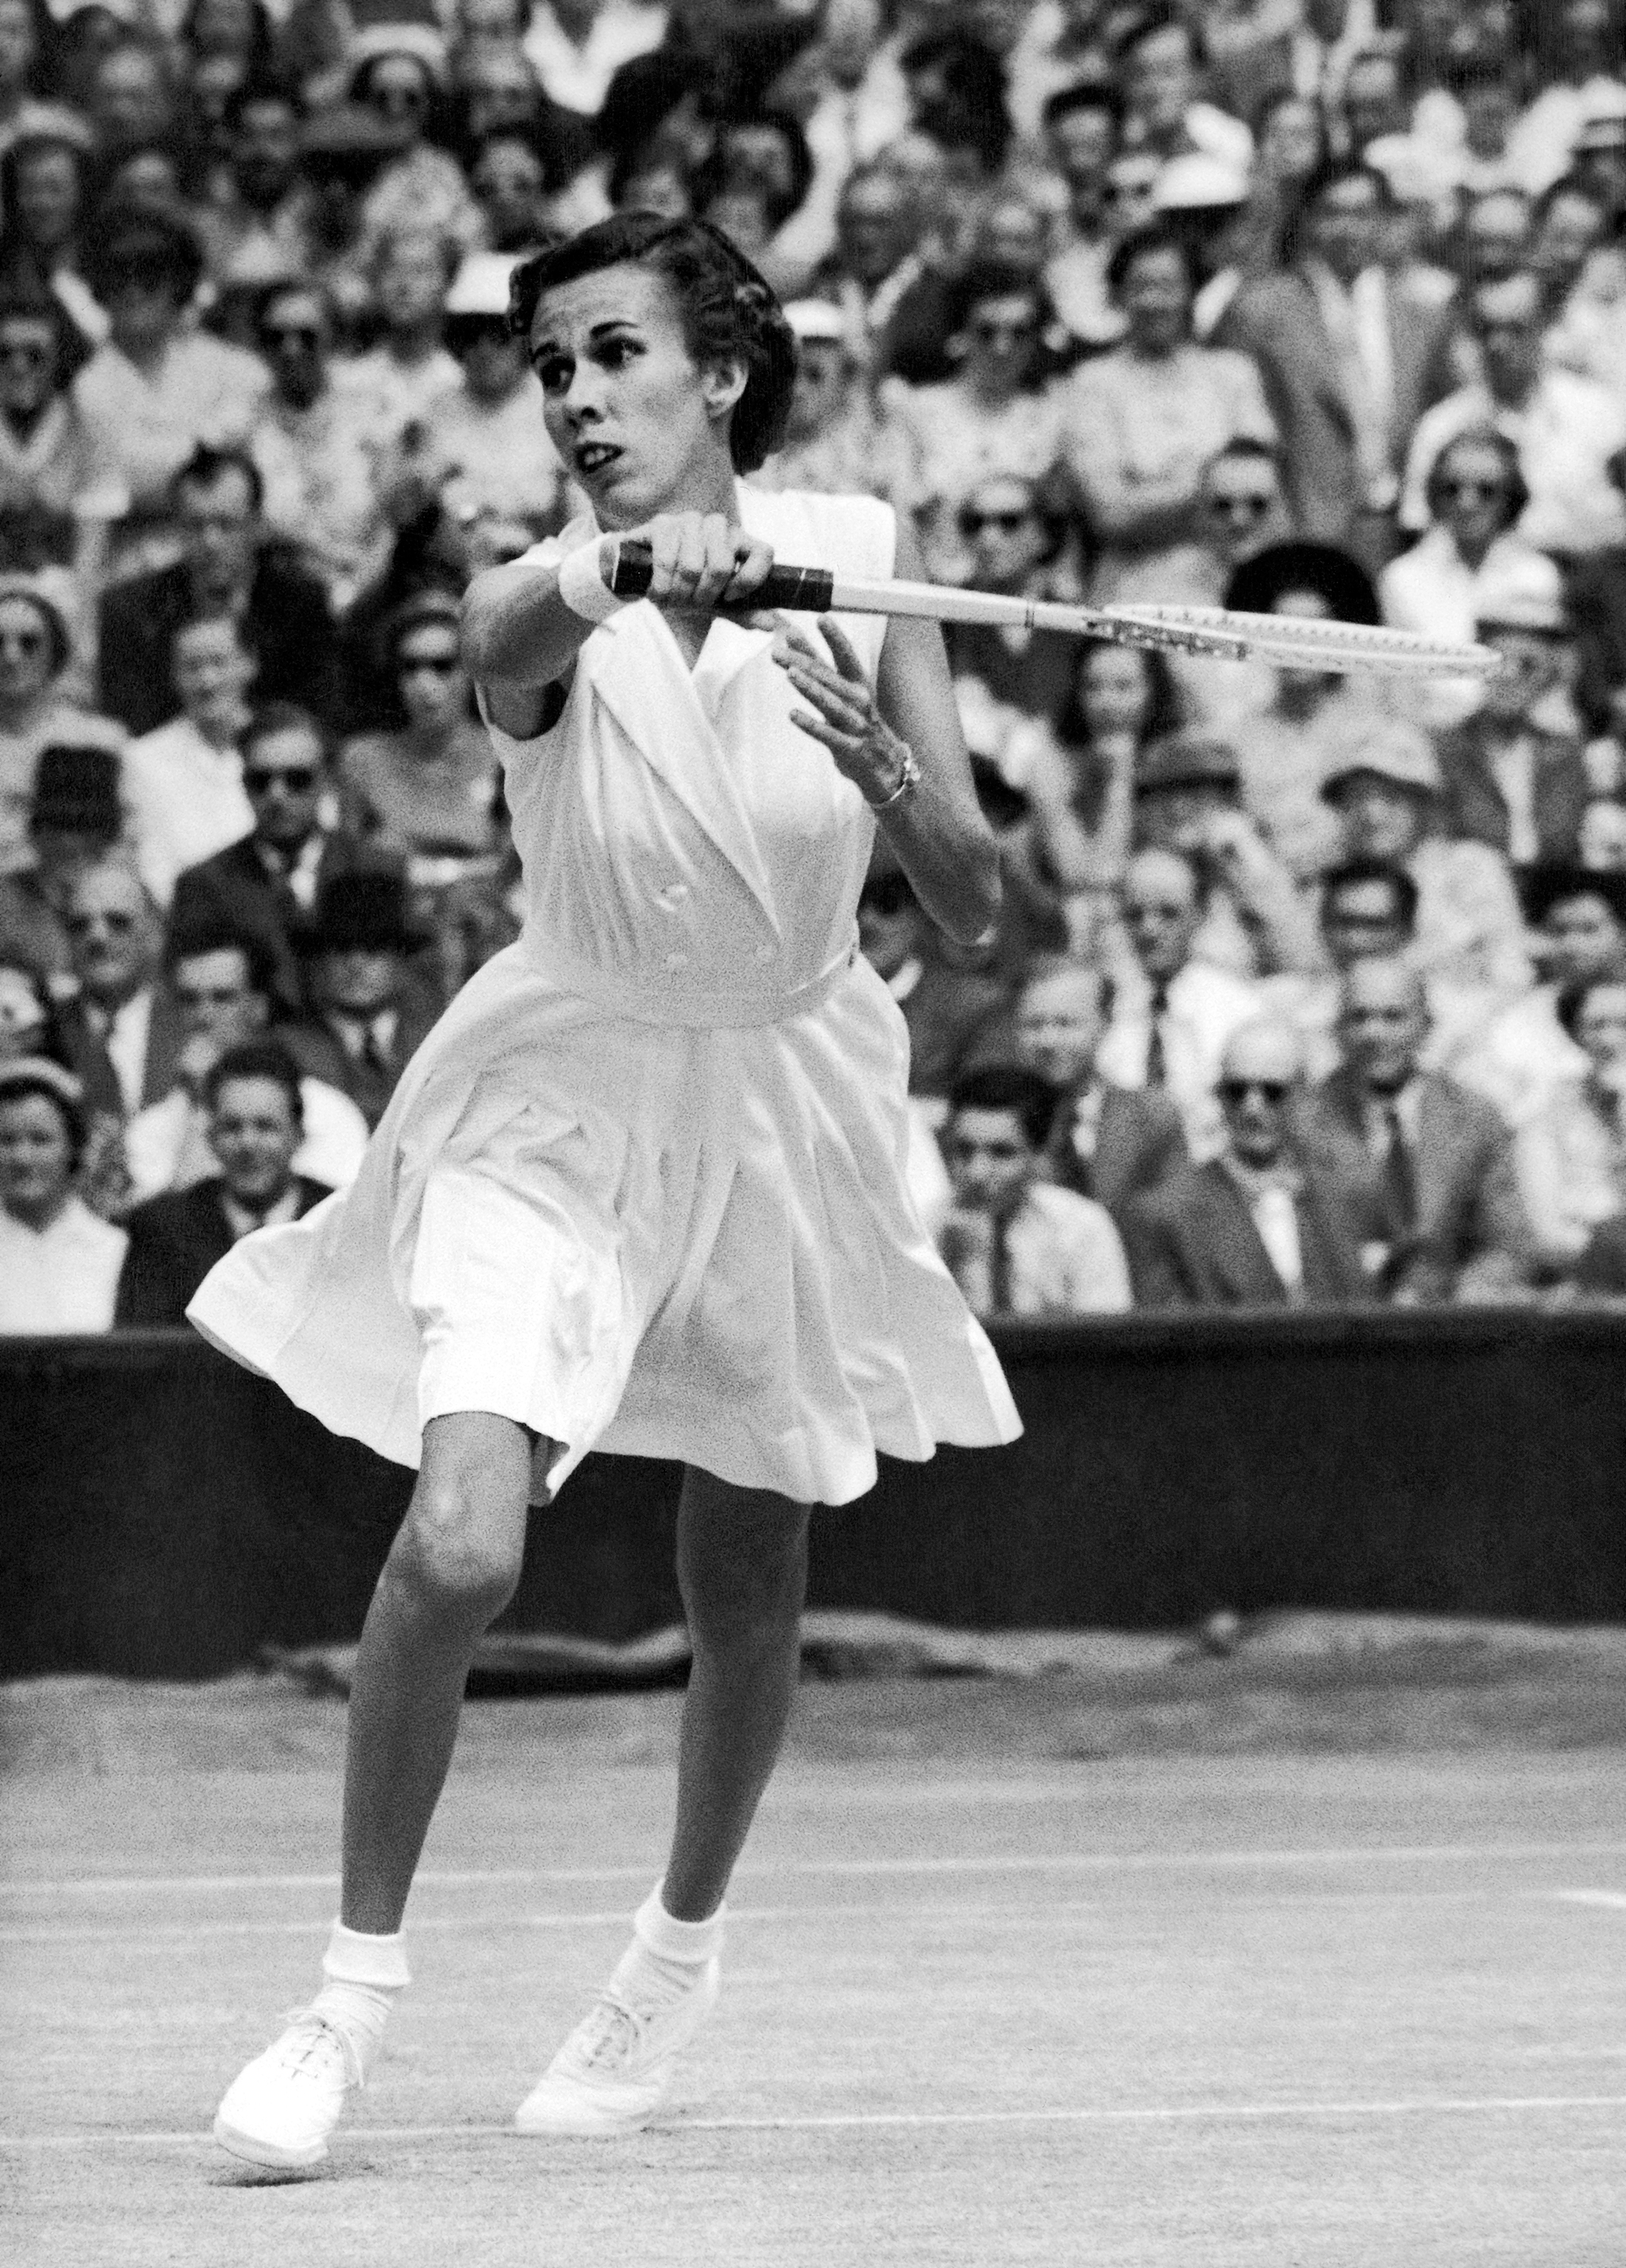 FILE - In this July 2, 1953, file photo, Doris Hart hits a return against Dorothy Head Knode in the semifinals match of All-England lawn tennis Championships at Wimbledon, London, England. Hart, who won each Grand Slam tournament at least once, and once w